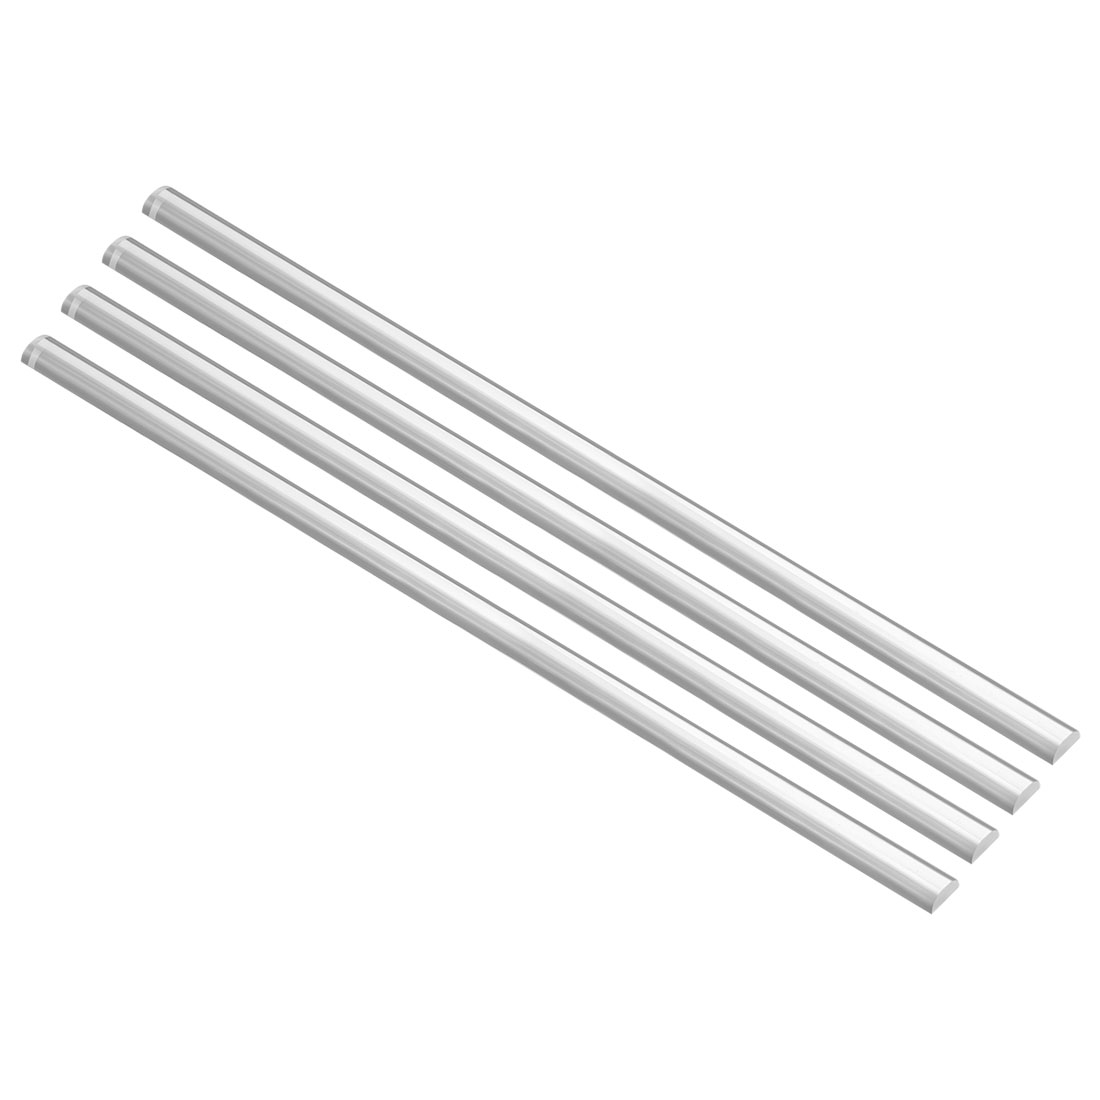 5mmx10mmx250mm Semicircle Shape Solid Acrylic Rod PMMA Extruded Bar Clear 4Pcs